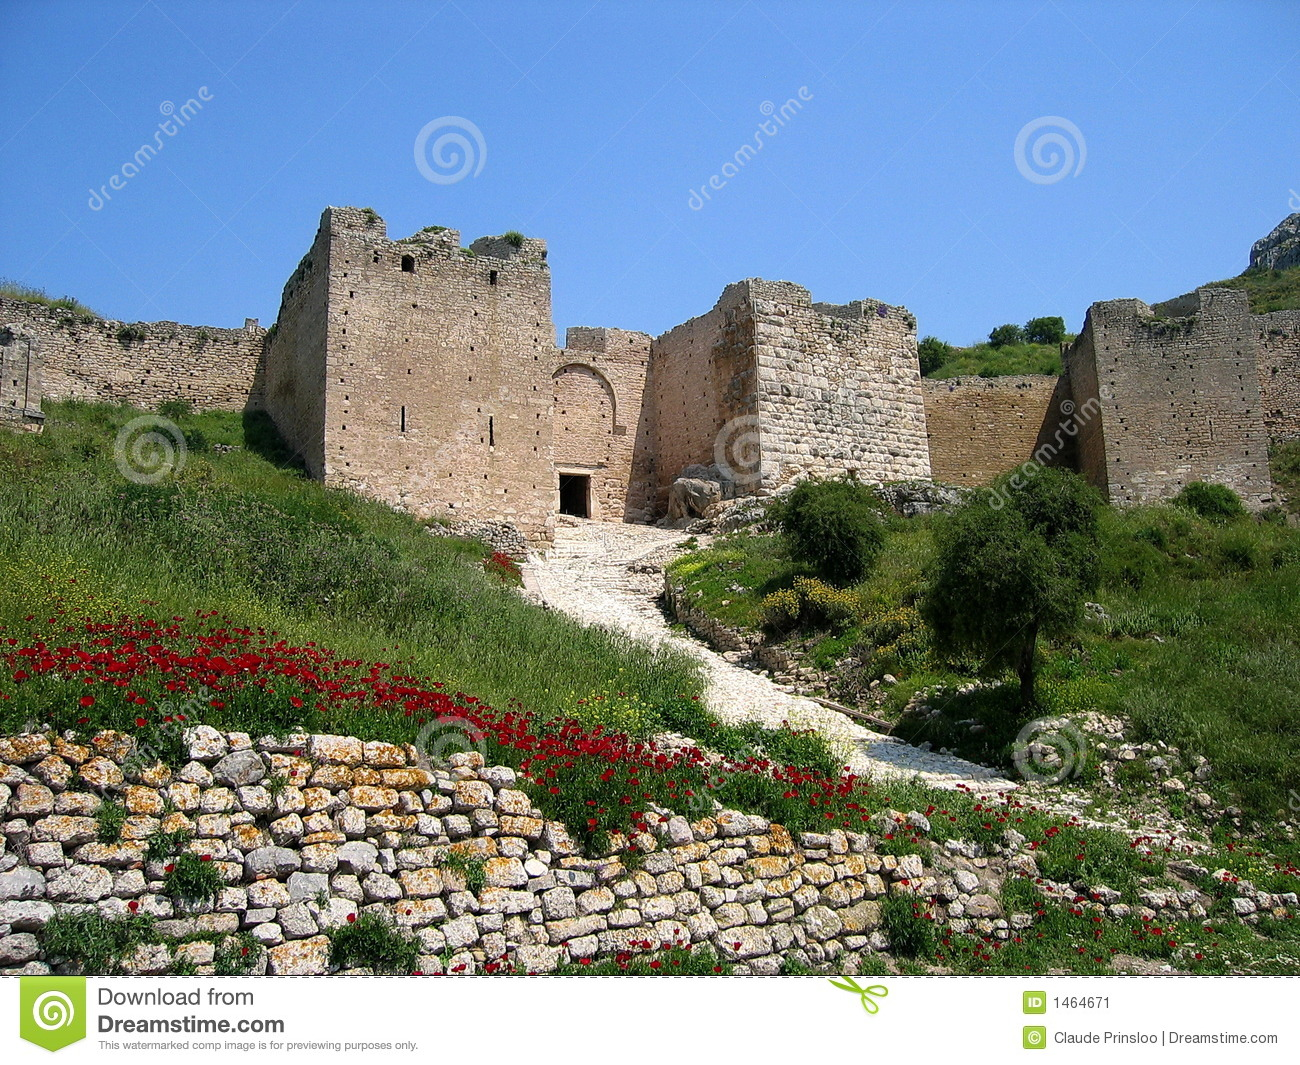 Castle In Corinth In Greece Stock Image - Image: 1464671